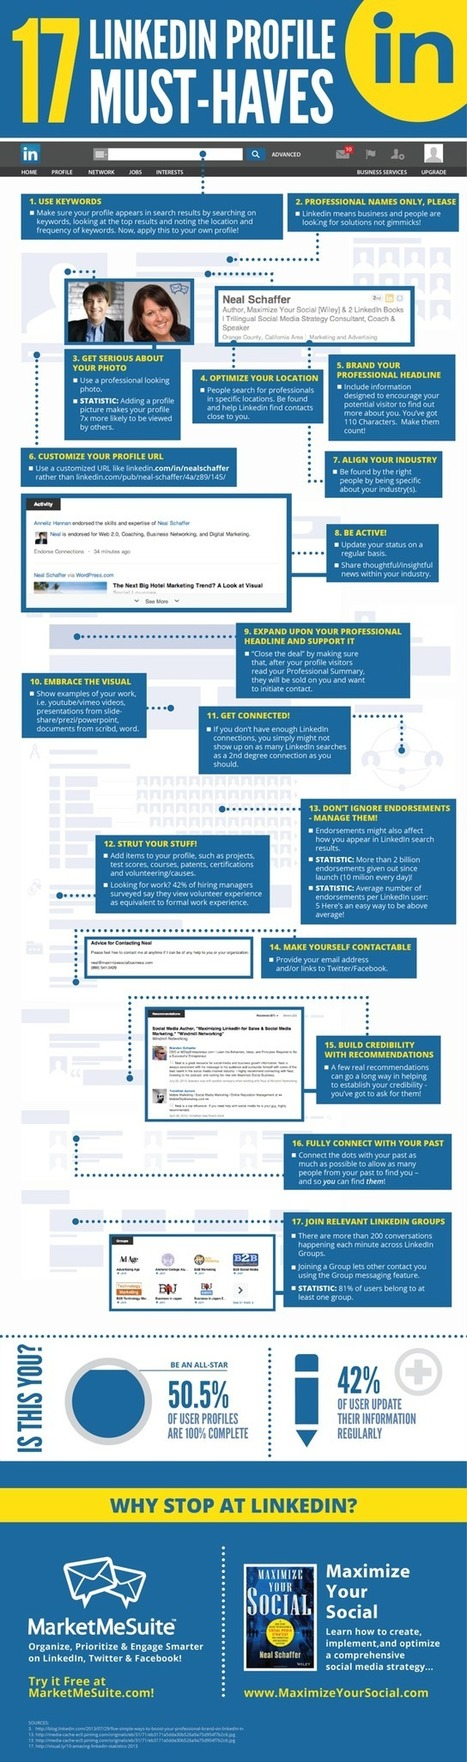 17 LinkedIn Profile Must-Haves [infographic] | SocialMoMojo Web | Scoop.it